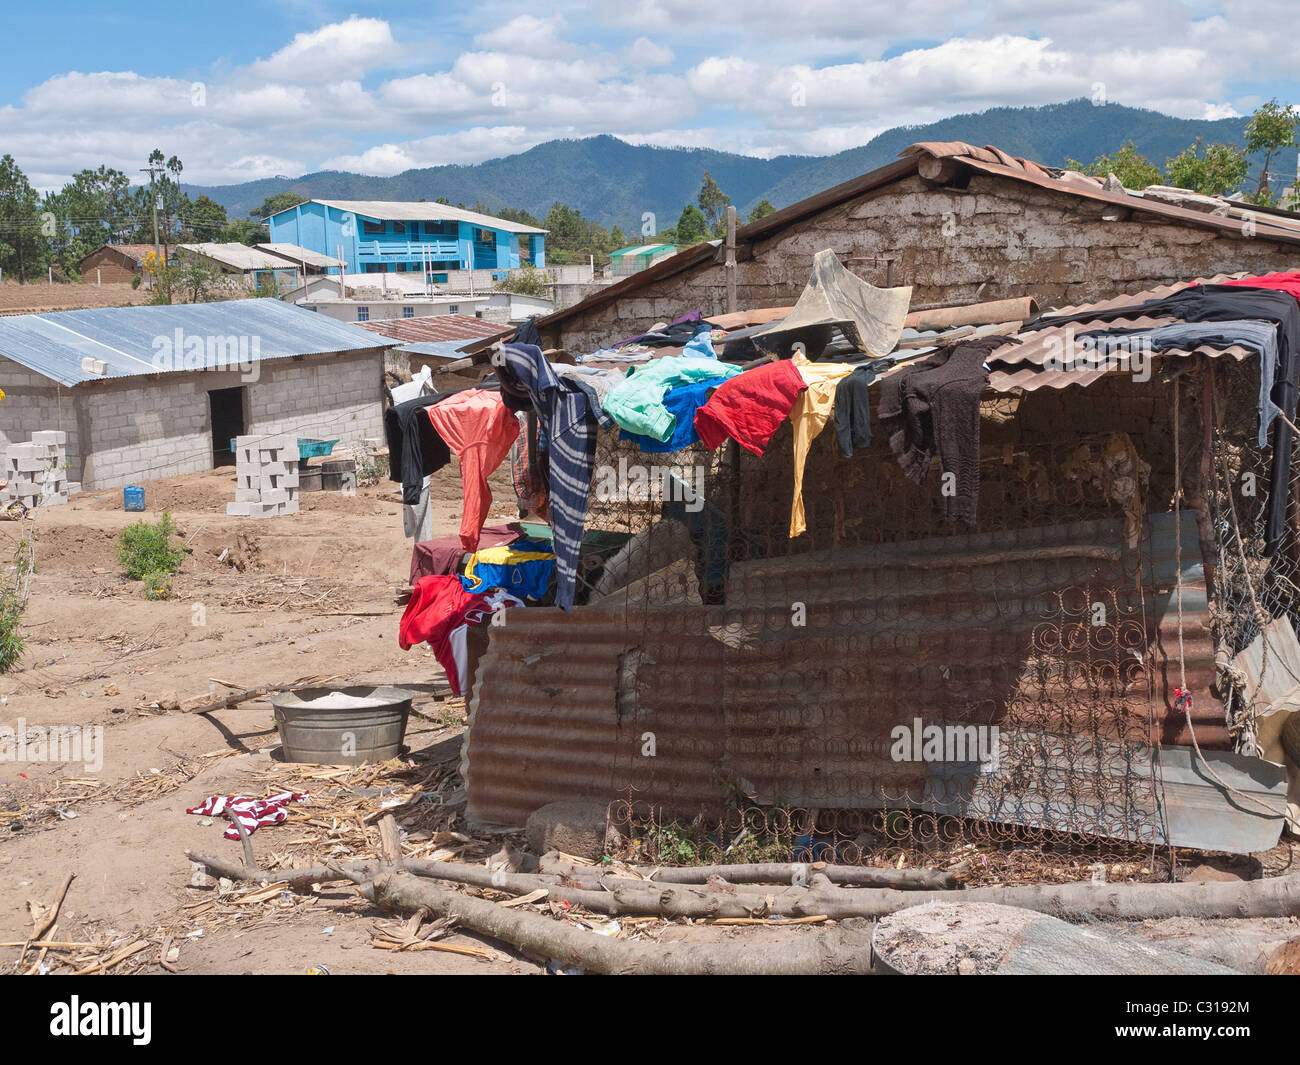 A family's wash hangs to dry off of the roof of a portion of their simple home in Totonicapan, Guatemala. Stock Photo